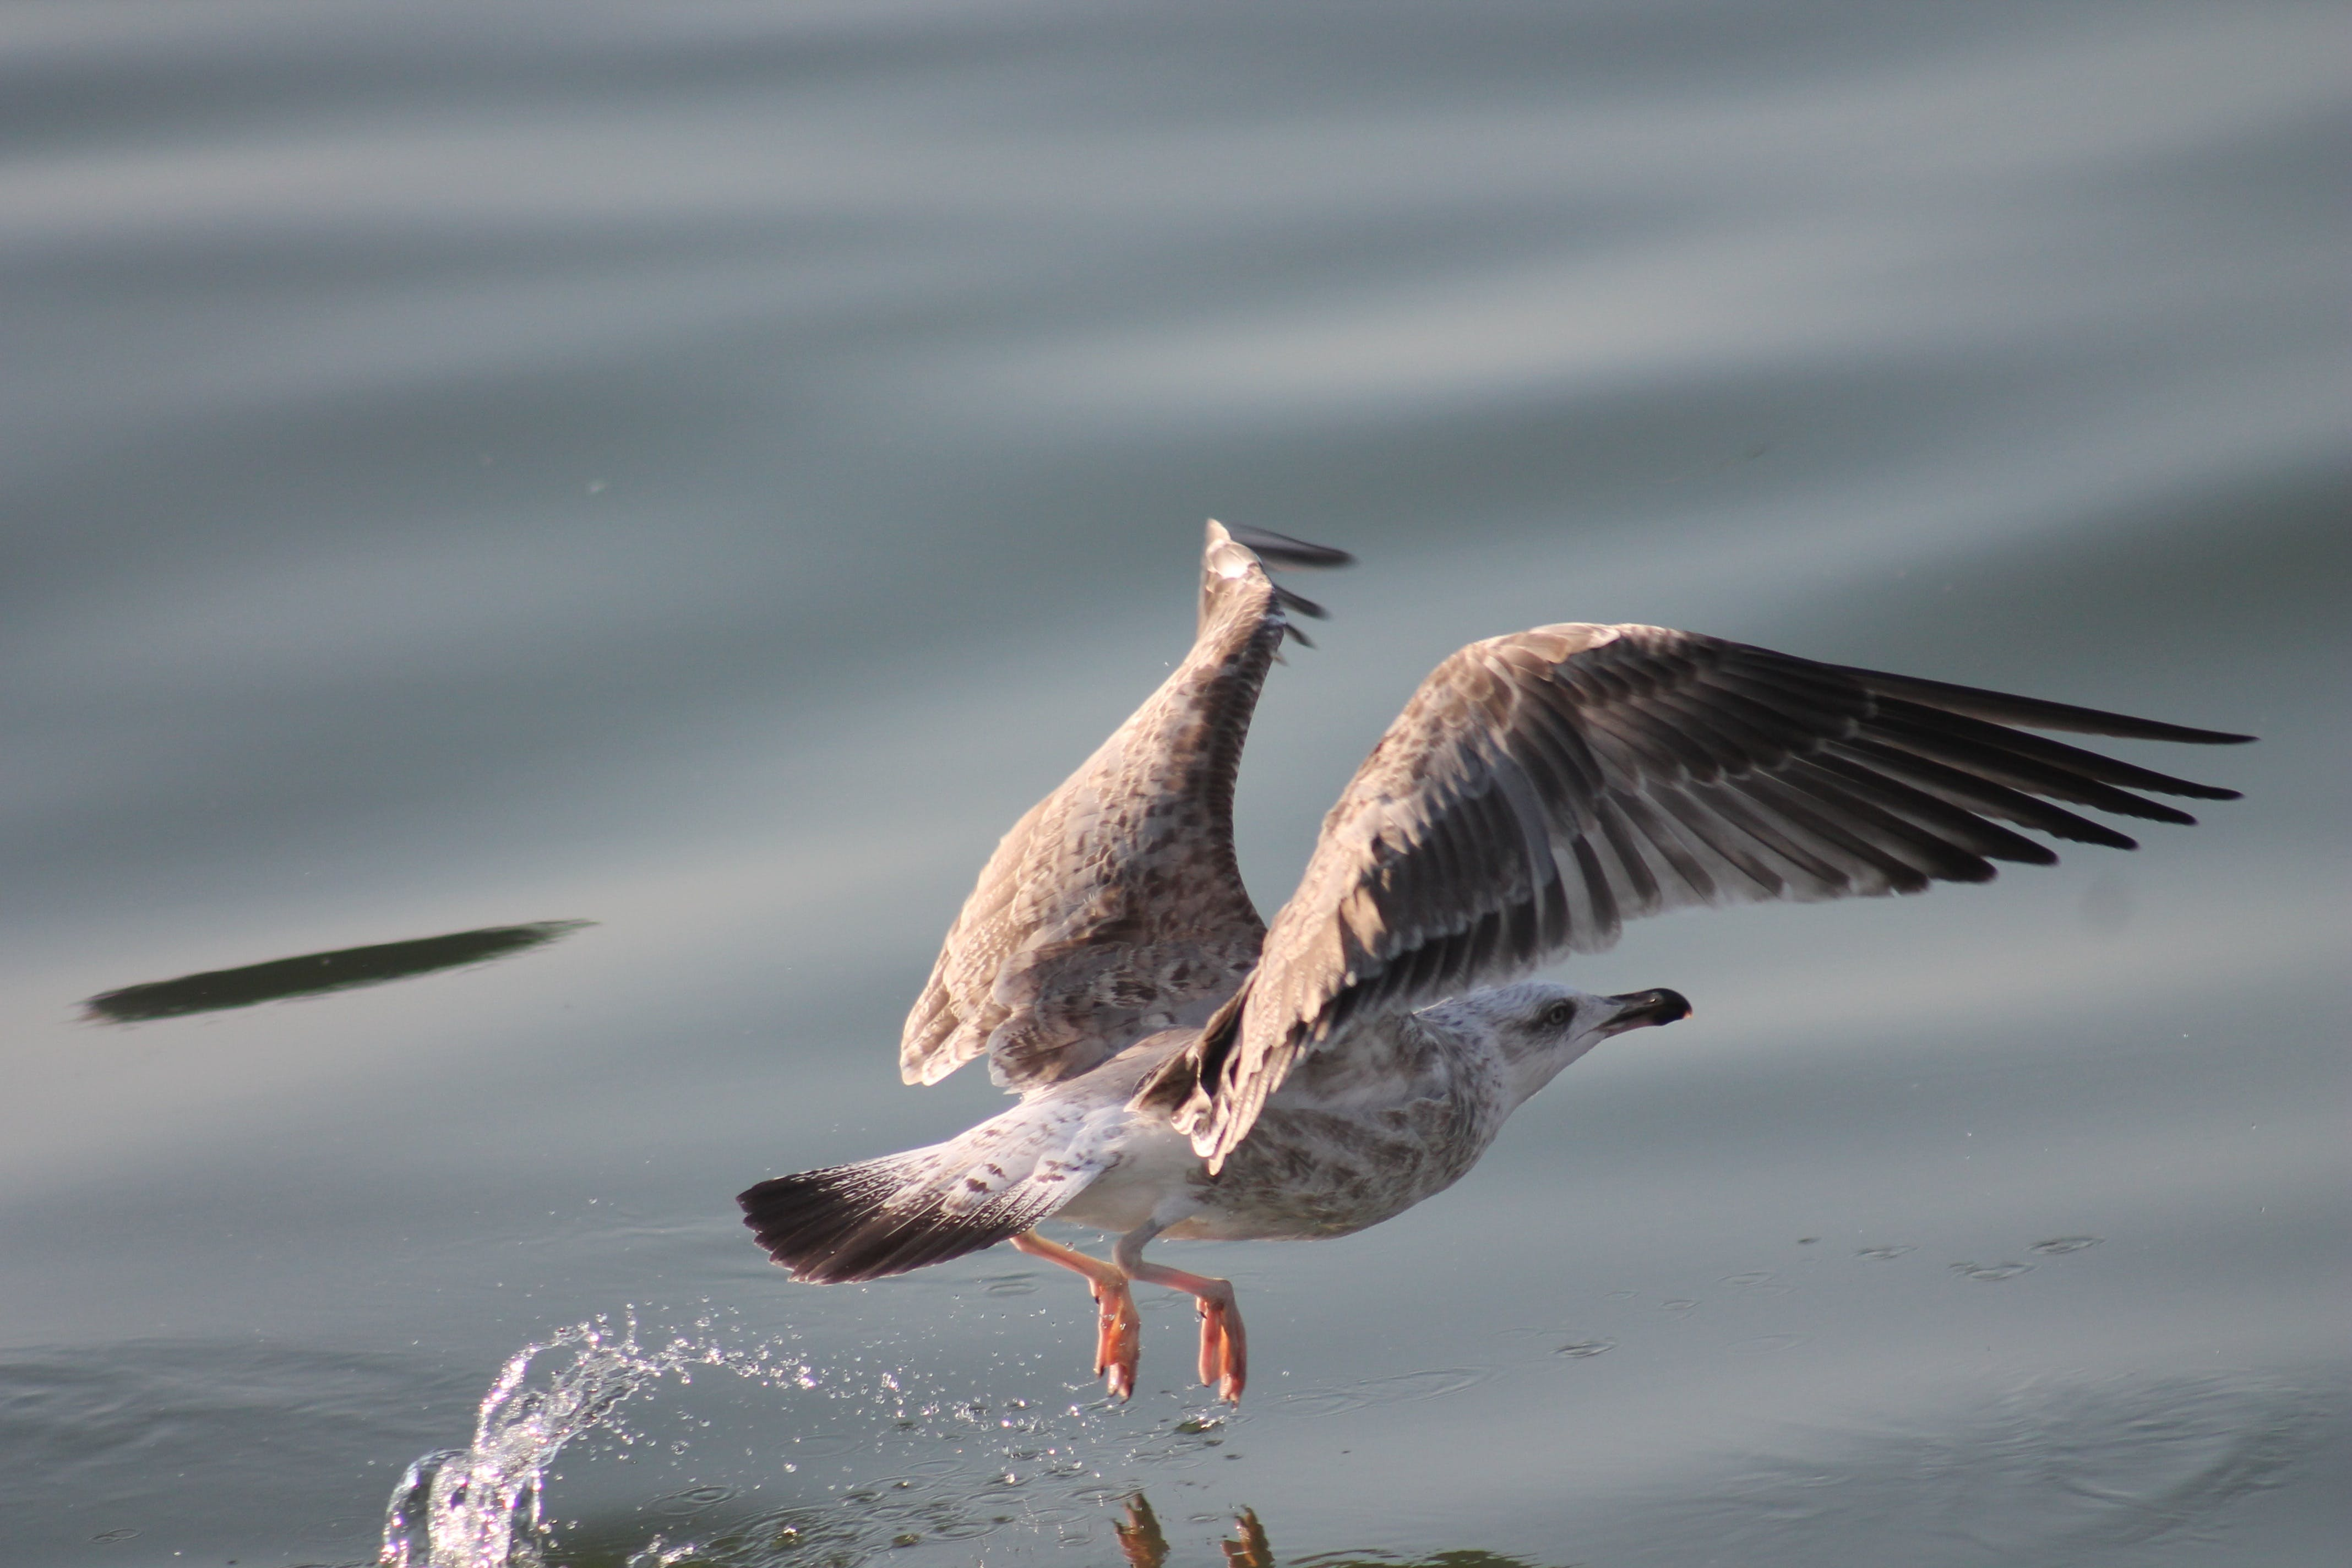 Selective Focus Photography of Gray Seagull Flying Above the Calm Body of Water